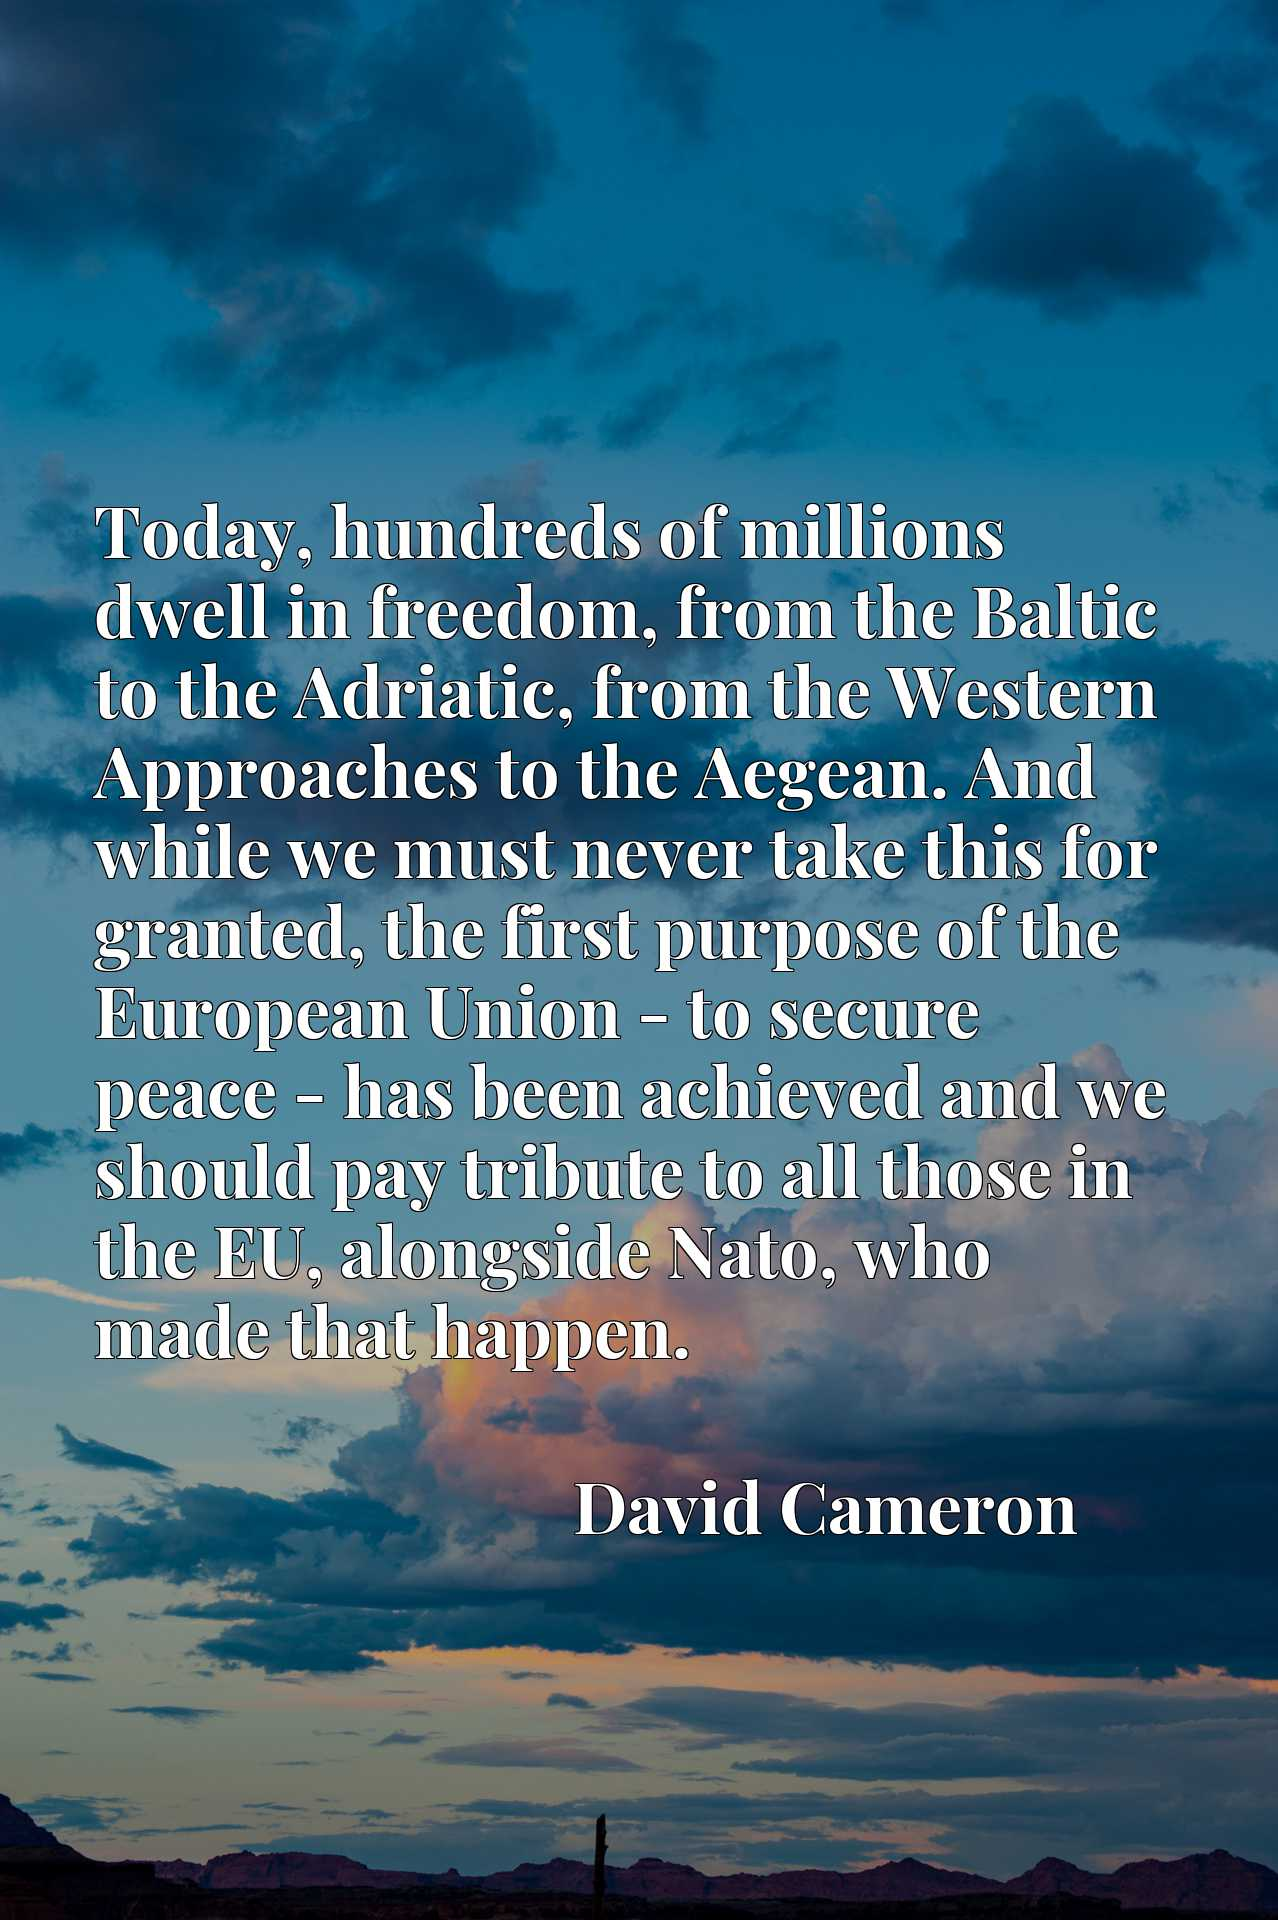 Today, hundreds of millions dwell in freedom, from the Baltic to the Adriatic, from the Western Approaches to the Aegean. And while we must never take this for granted, the first purpose of the European Union - to secure peace - has been achieved and we should pay tribute to all those in the EU, alongside Nato, who made that happen.